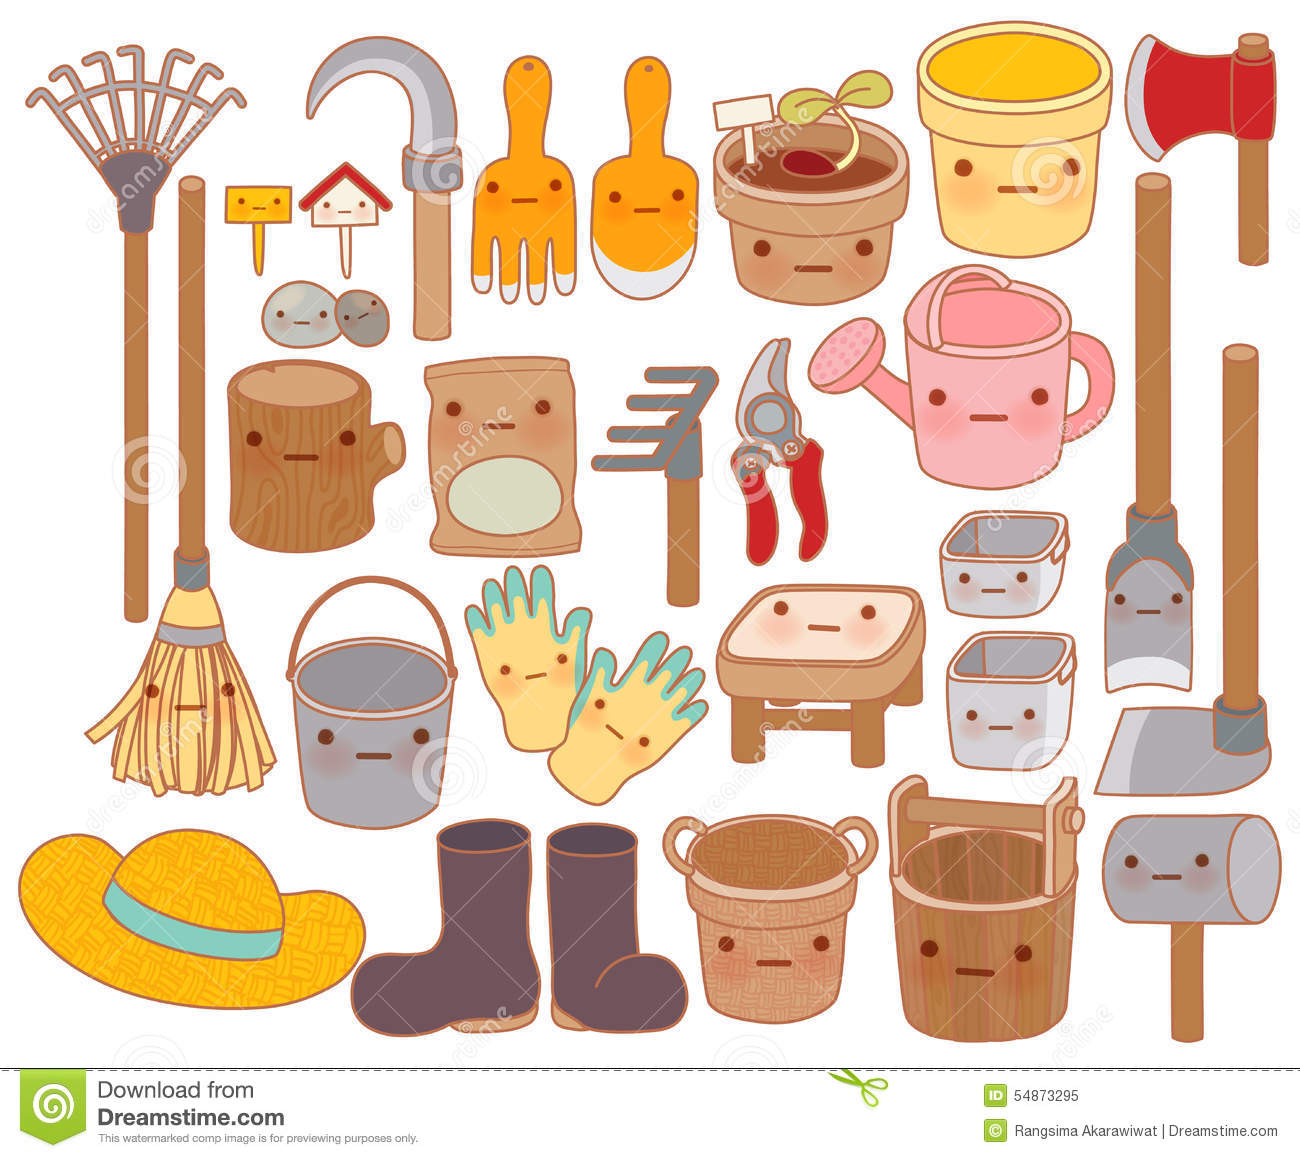 Royalty Free Illustration. Download Set Of Adorable Garden Tools Cartoon ,  Cute ...